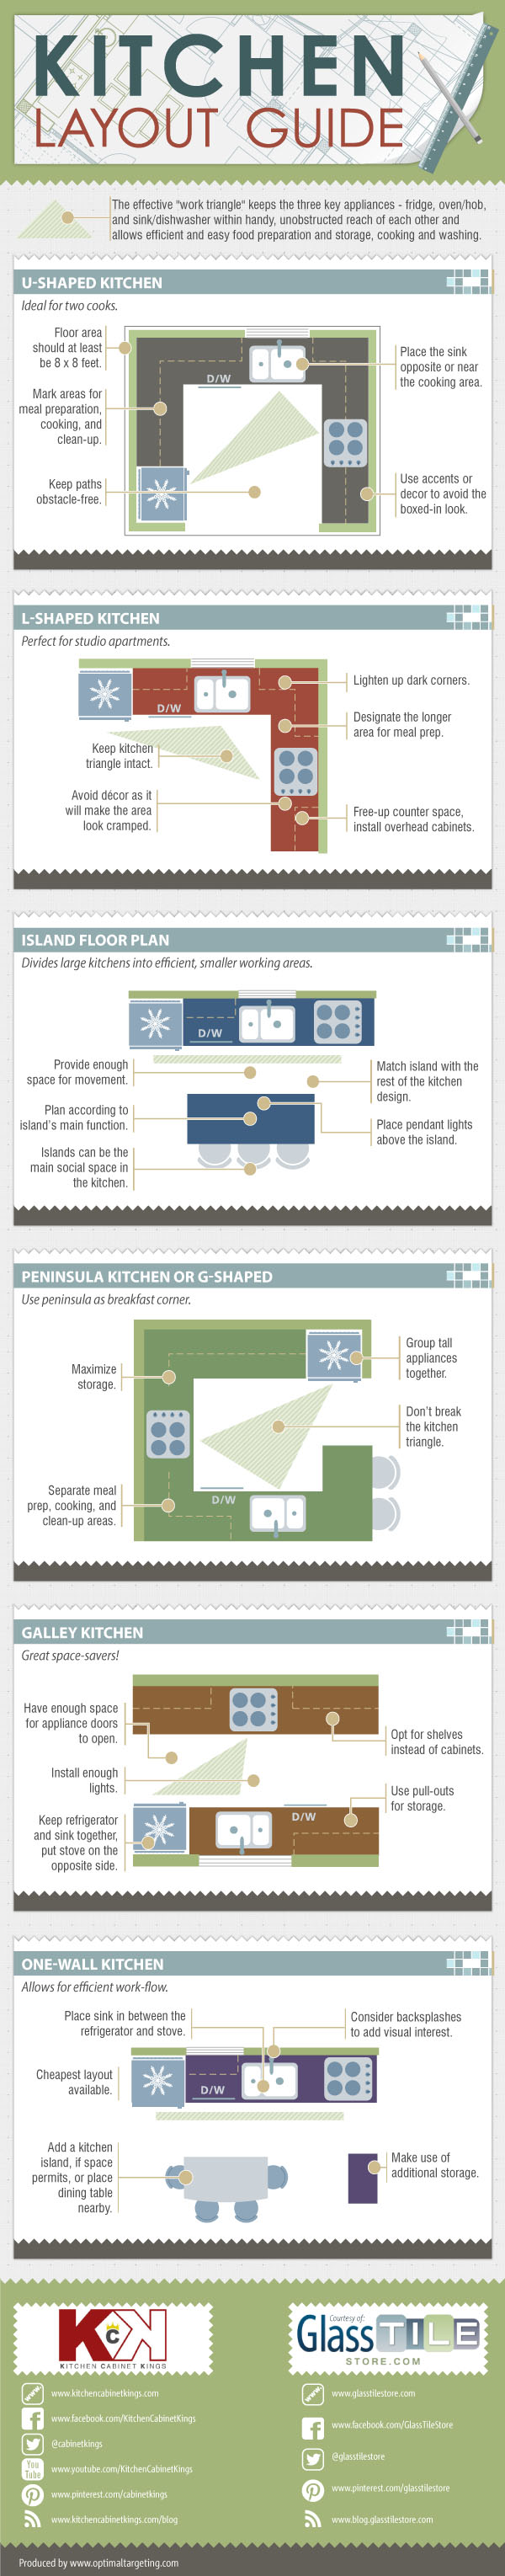 How to Choose a Kitchen Layout Based on the Fridge-Oven-Sink Work Triangle